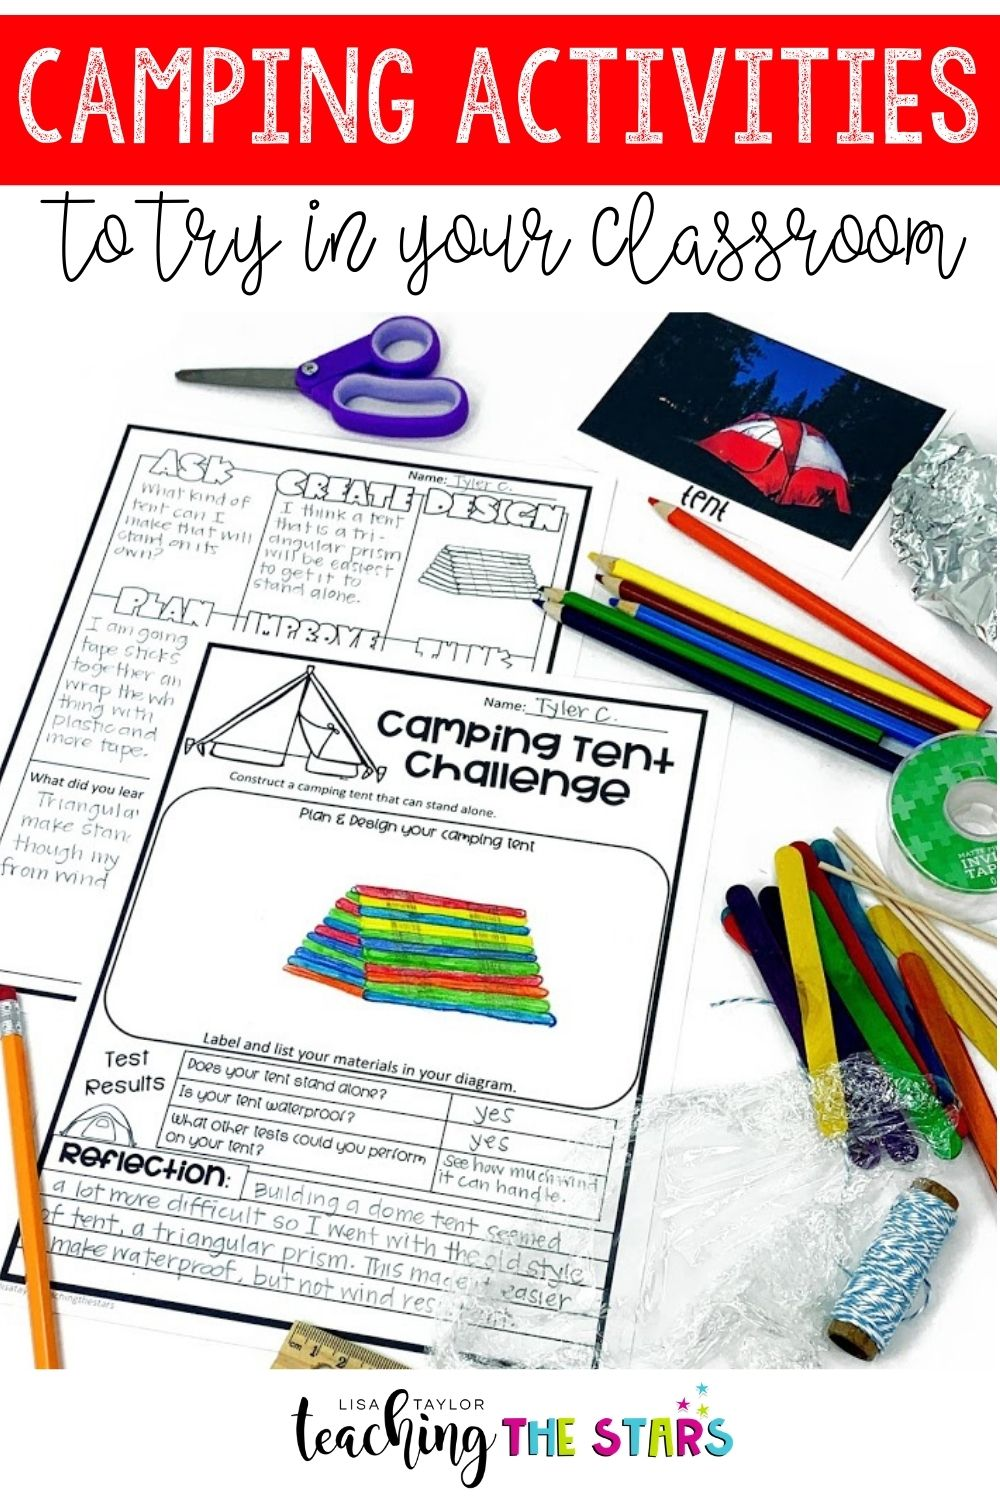 STEM Camping Challenges